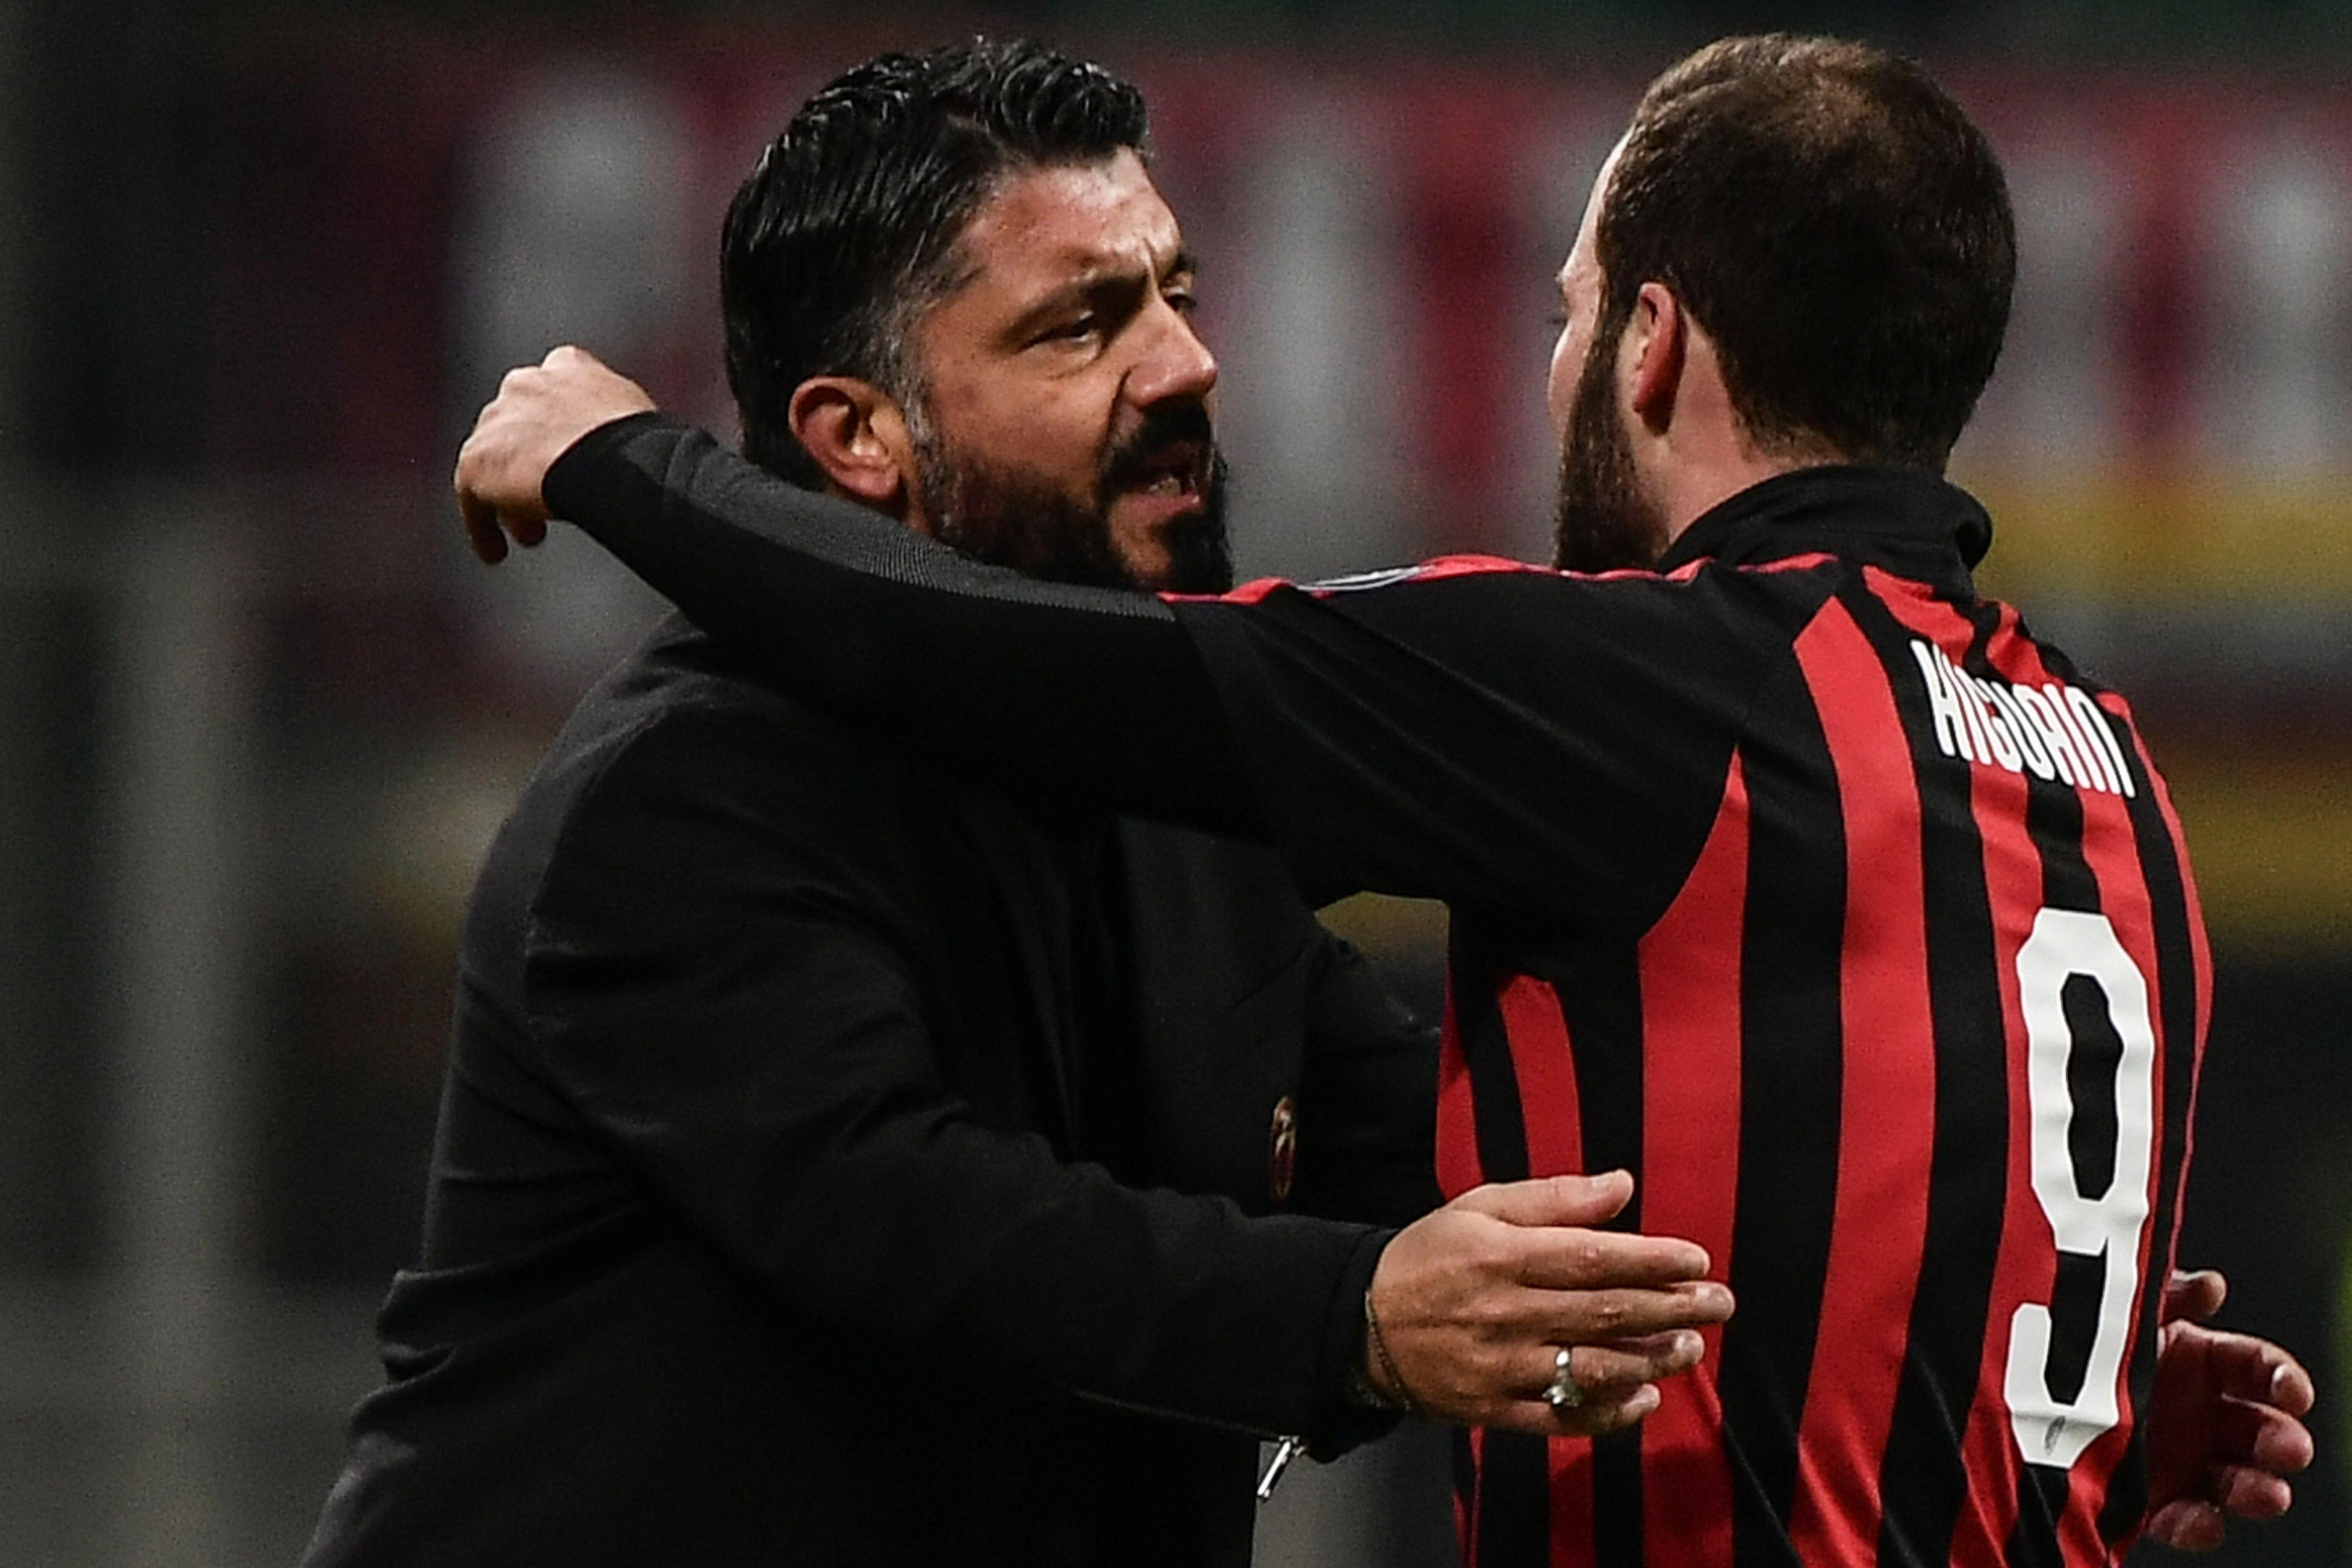 Genoa vs AC Milan: Live stream, TV channel, kick off time and team news for Serie A clash